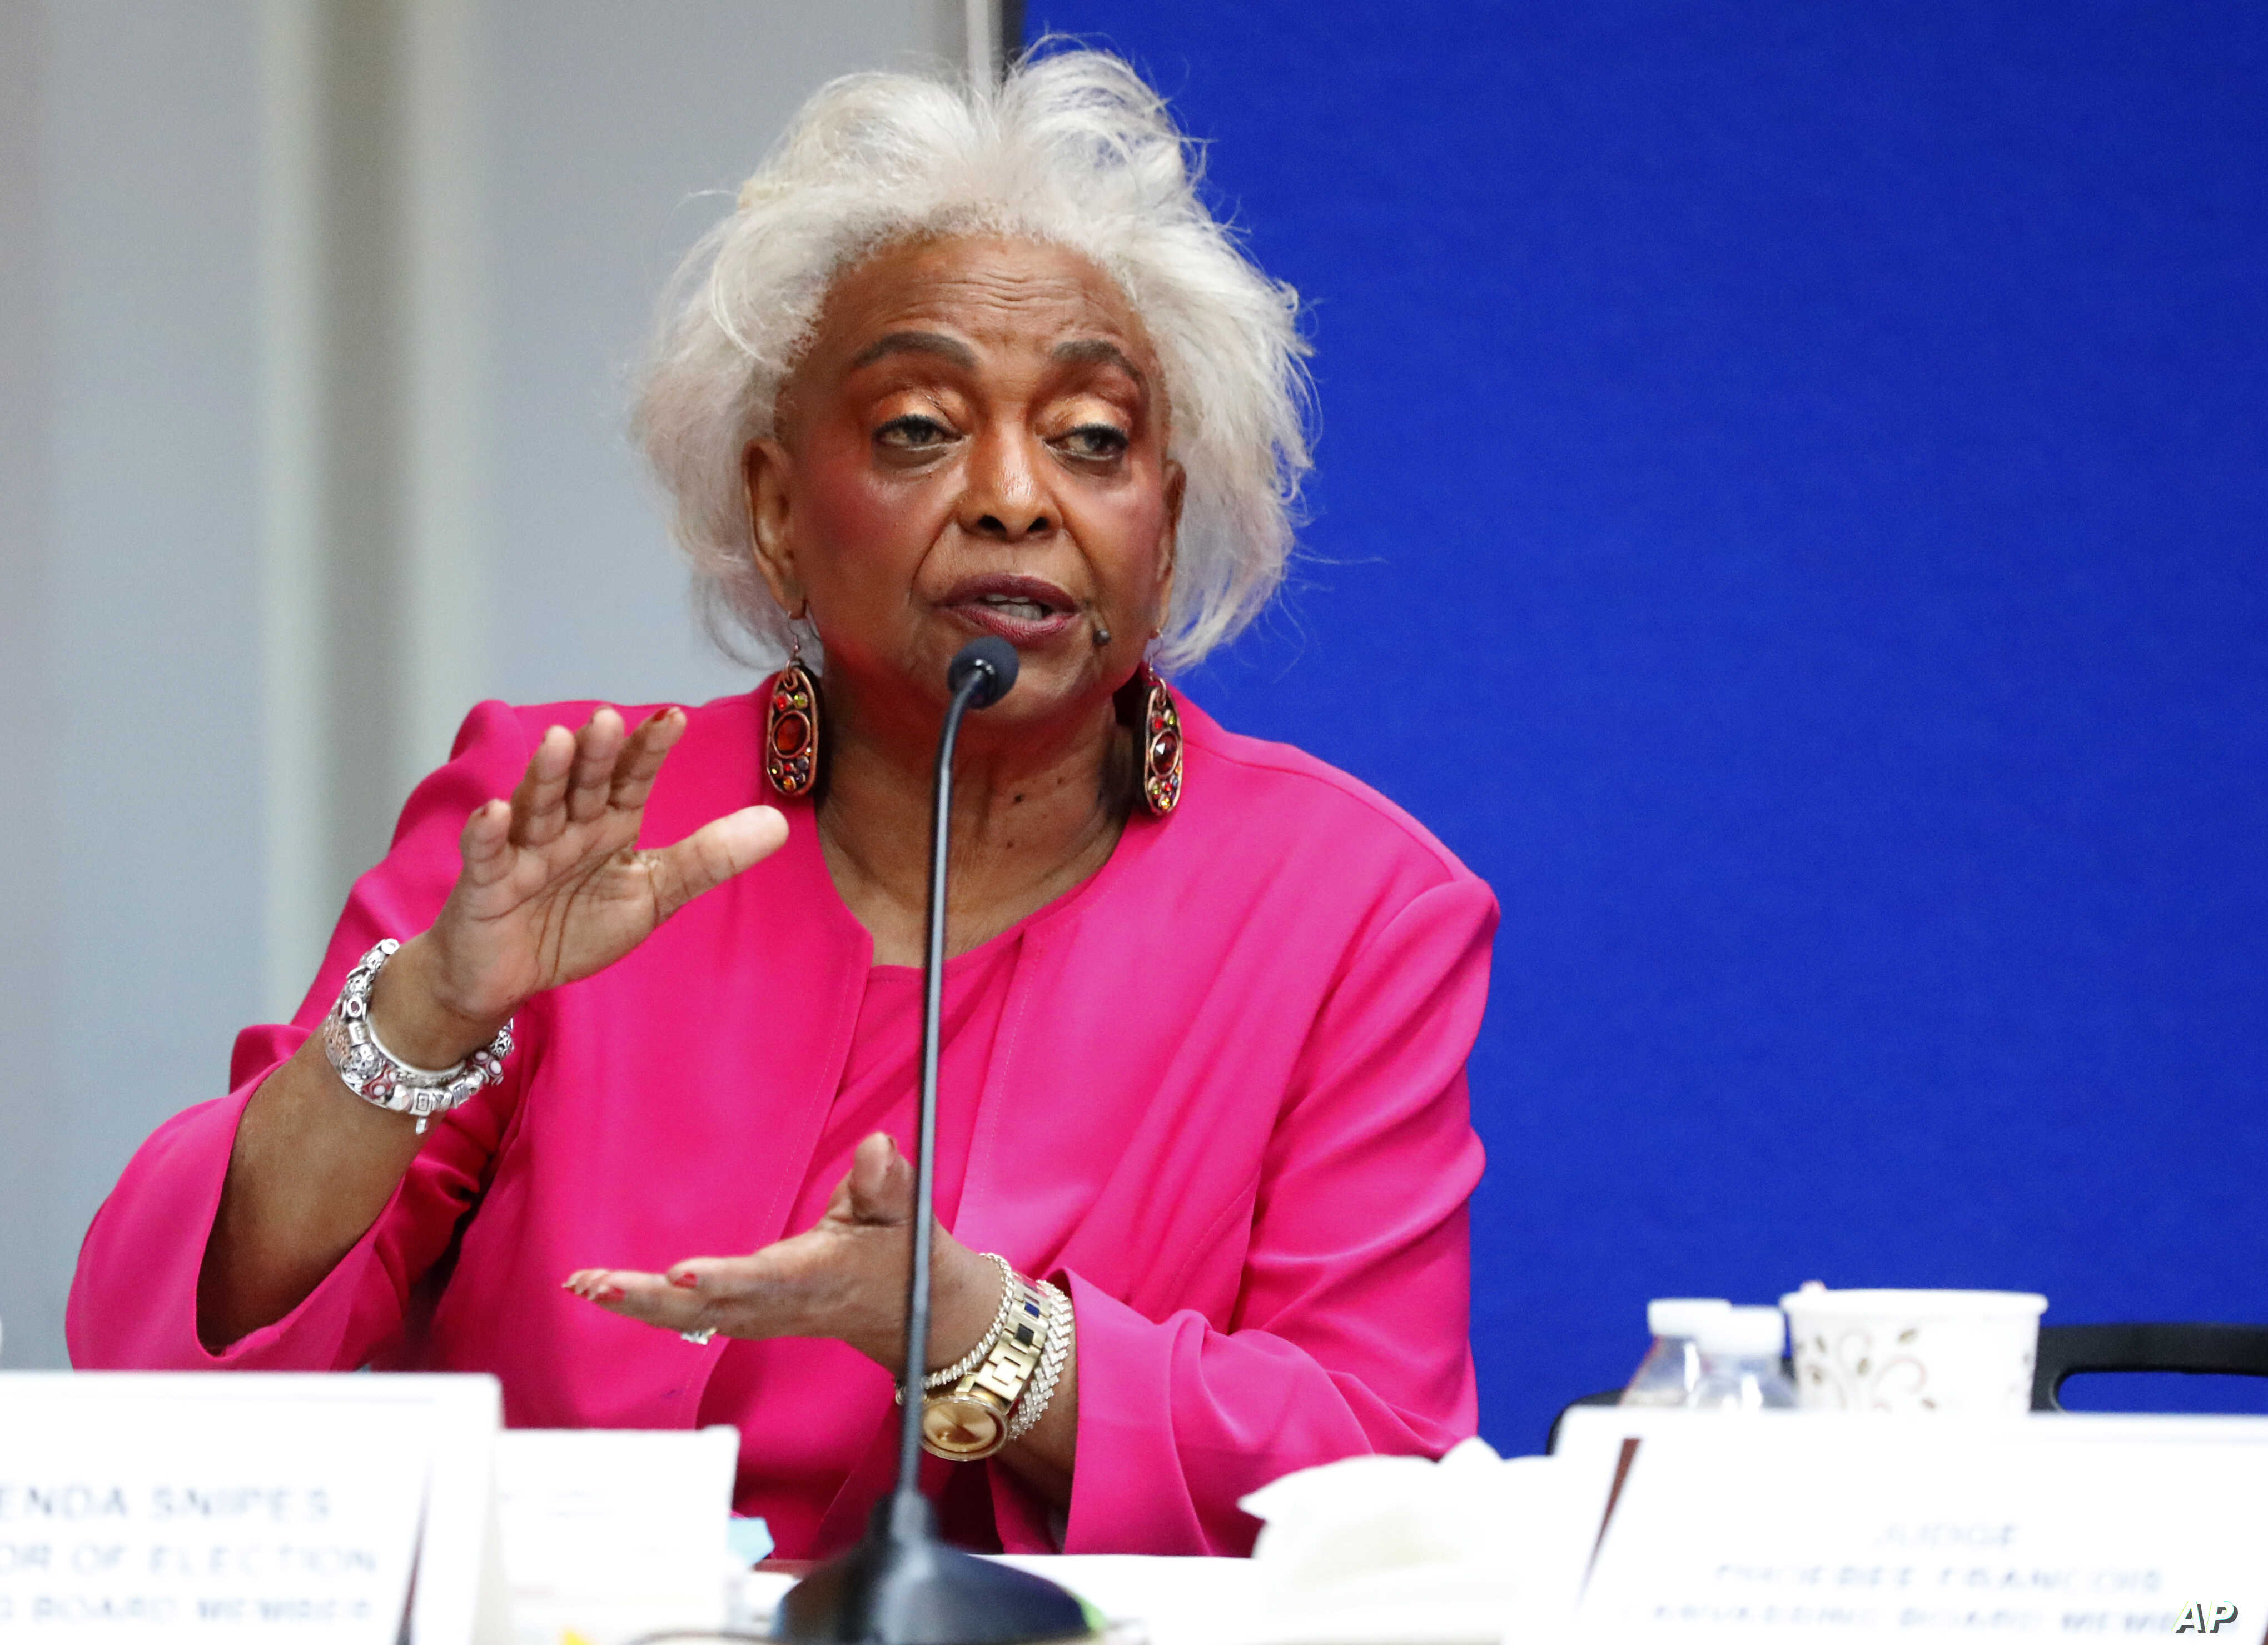 Broward County Supervisor of Elections Brenda Snipes answers questions at the Supervisor of Elections office, Nov. 12, 2018, in Lauderhill, Florida.